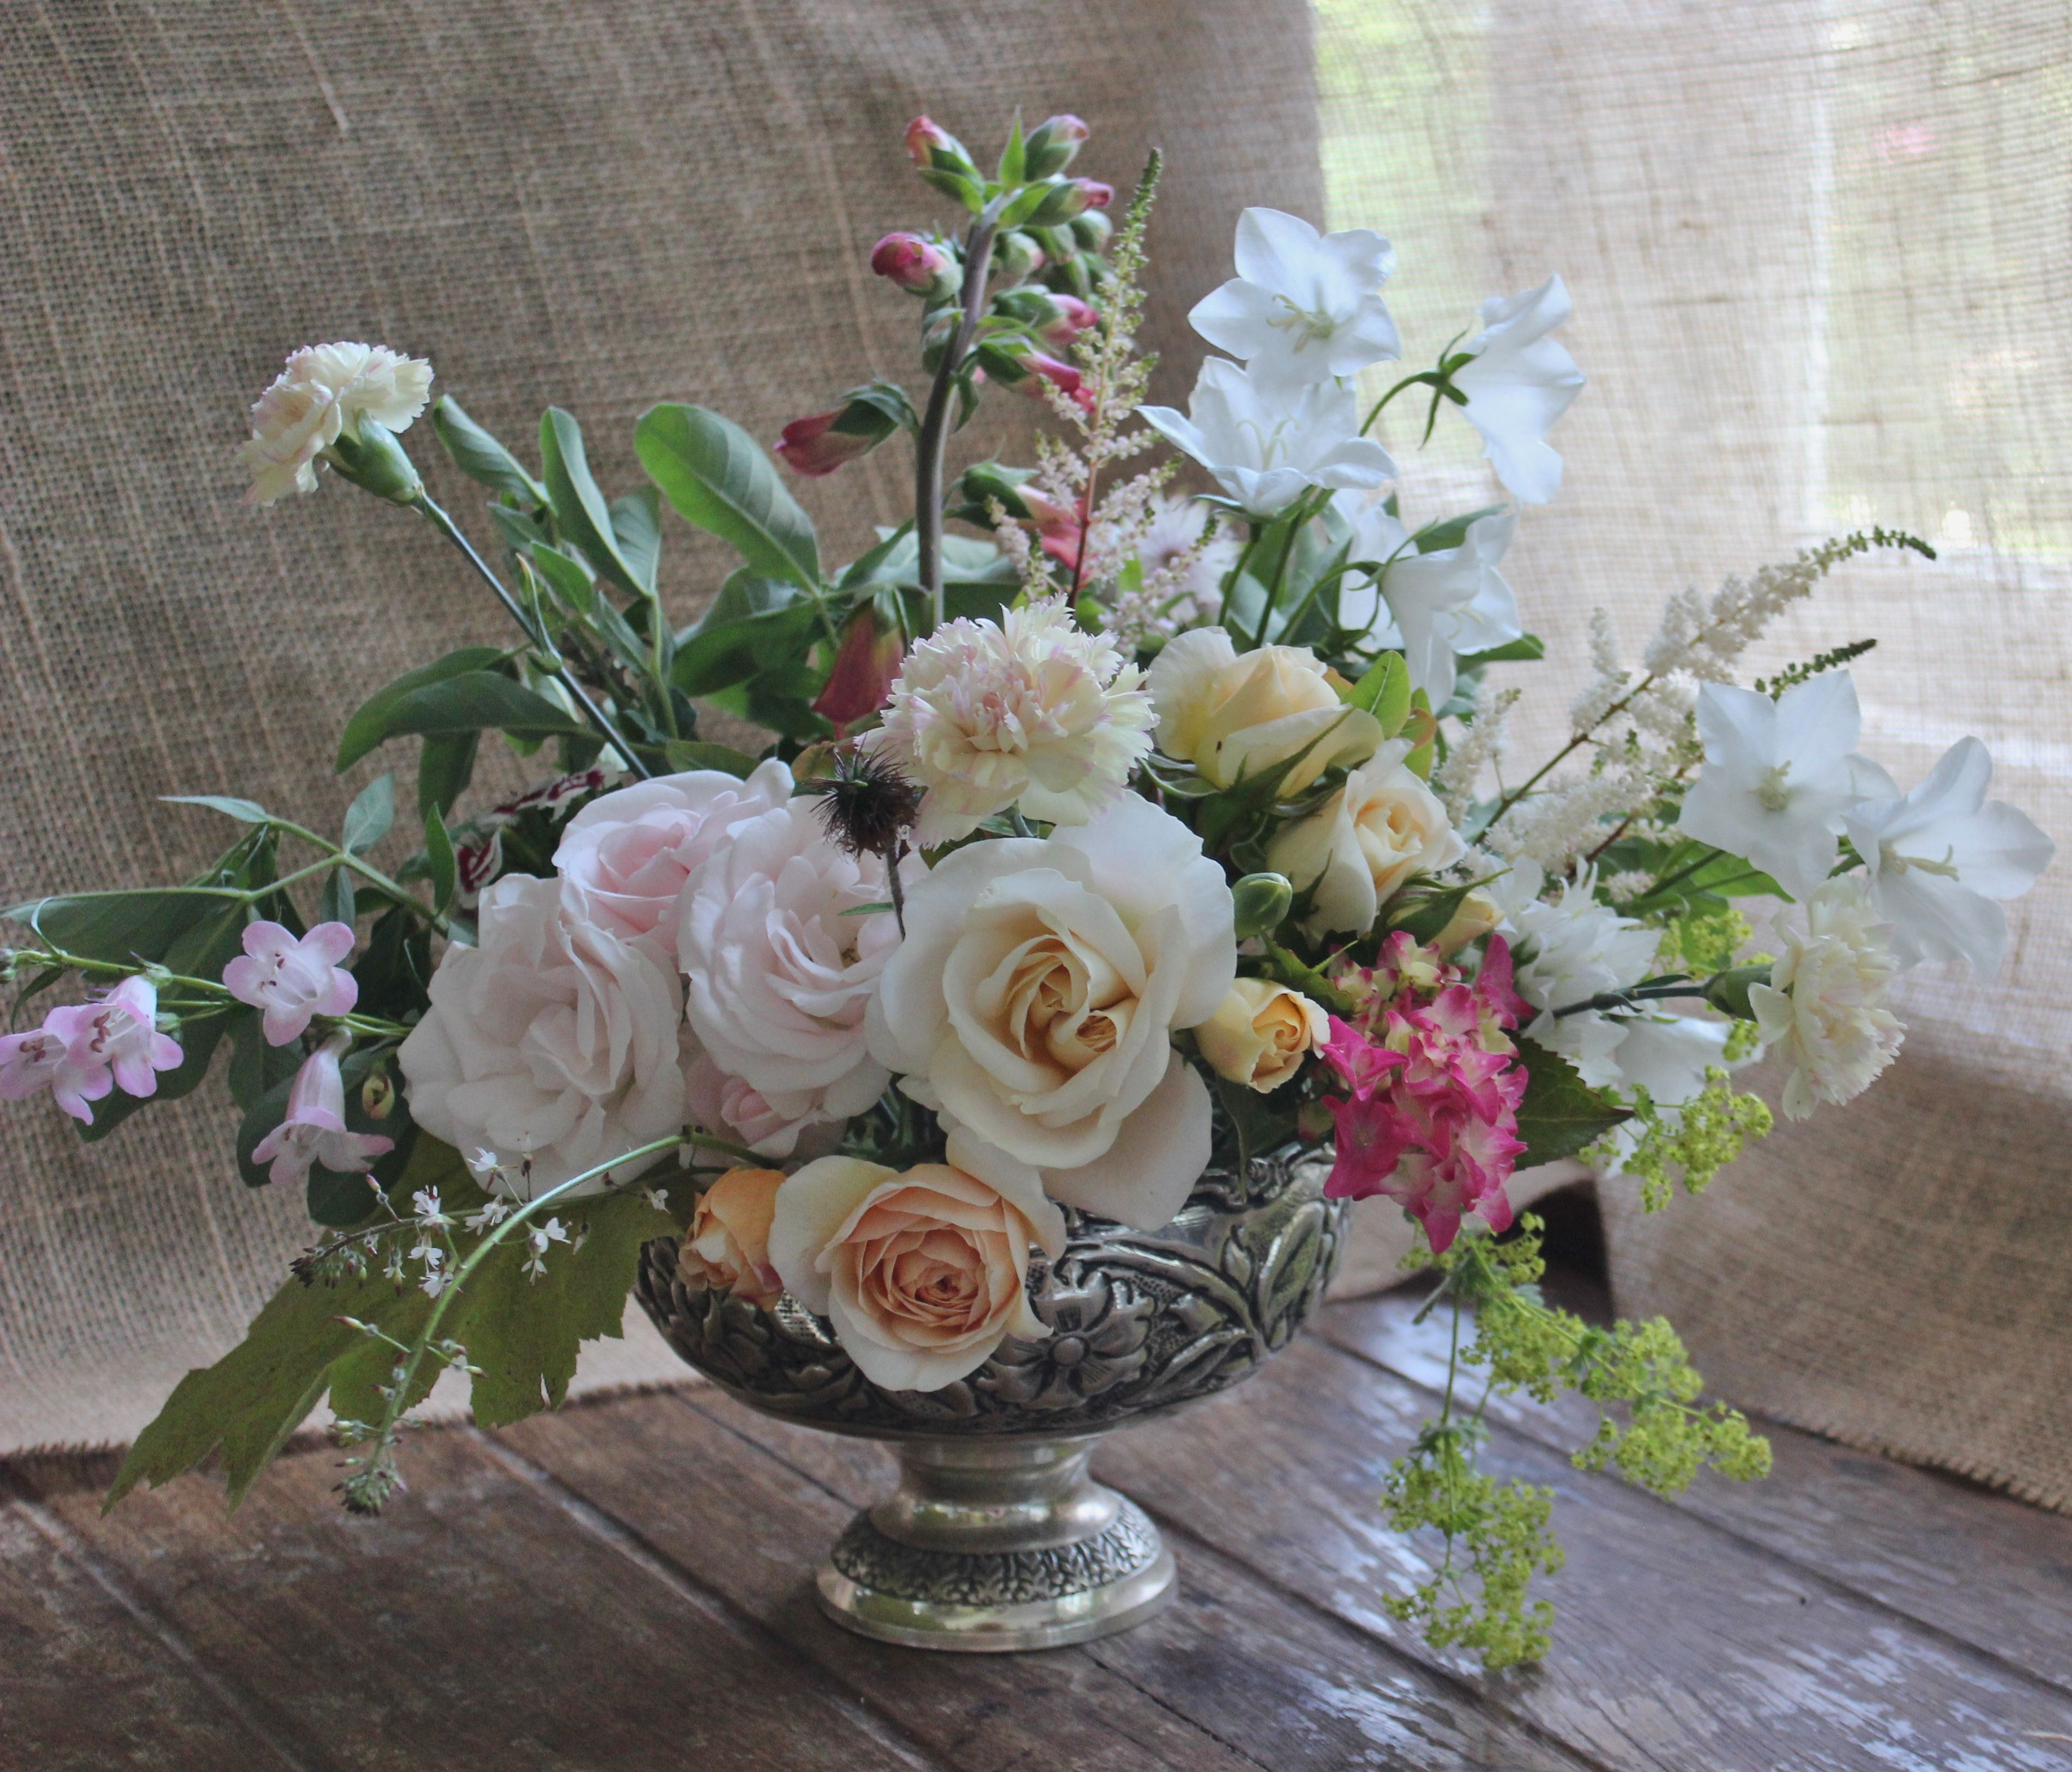 Lock Cottage Flowers Surrey UK June Garden Arrangement In Footed Bowl